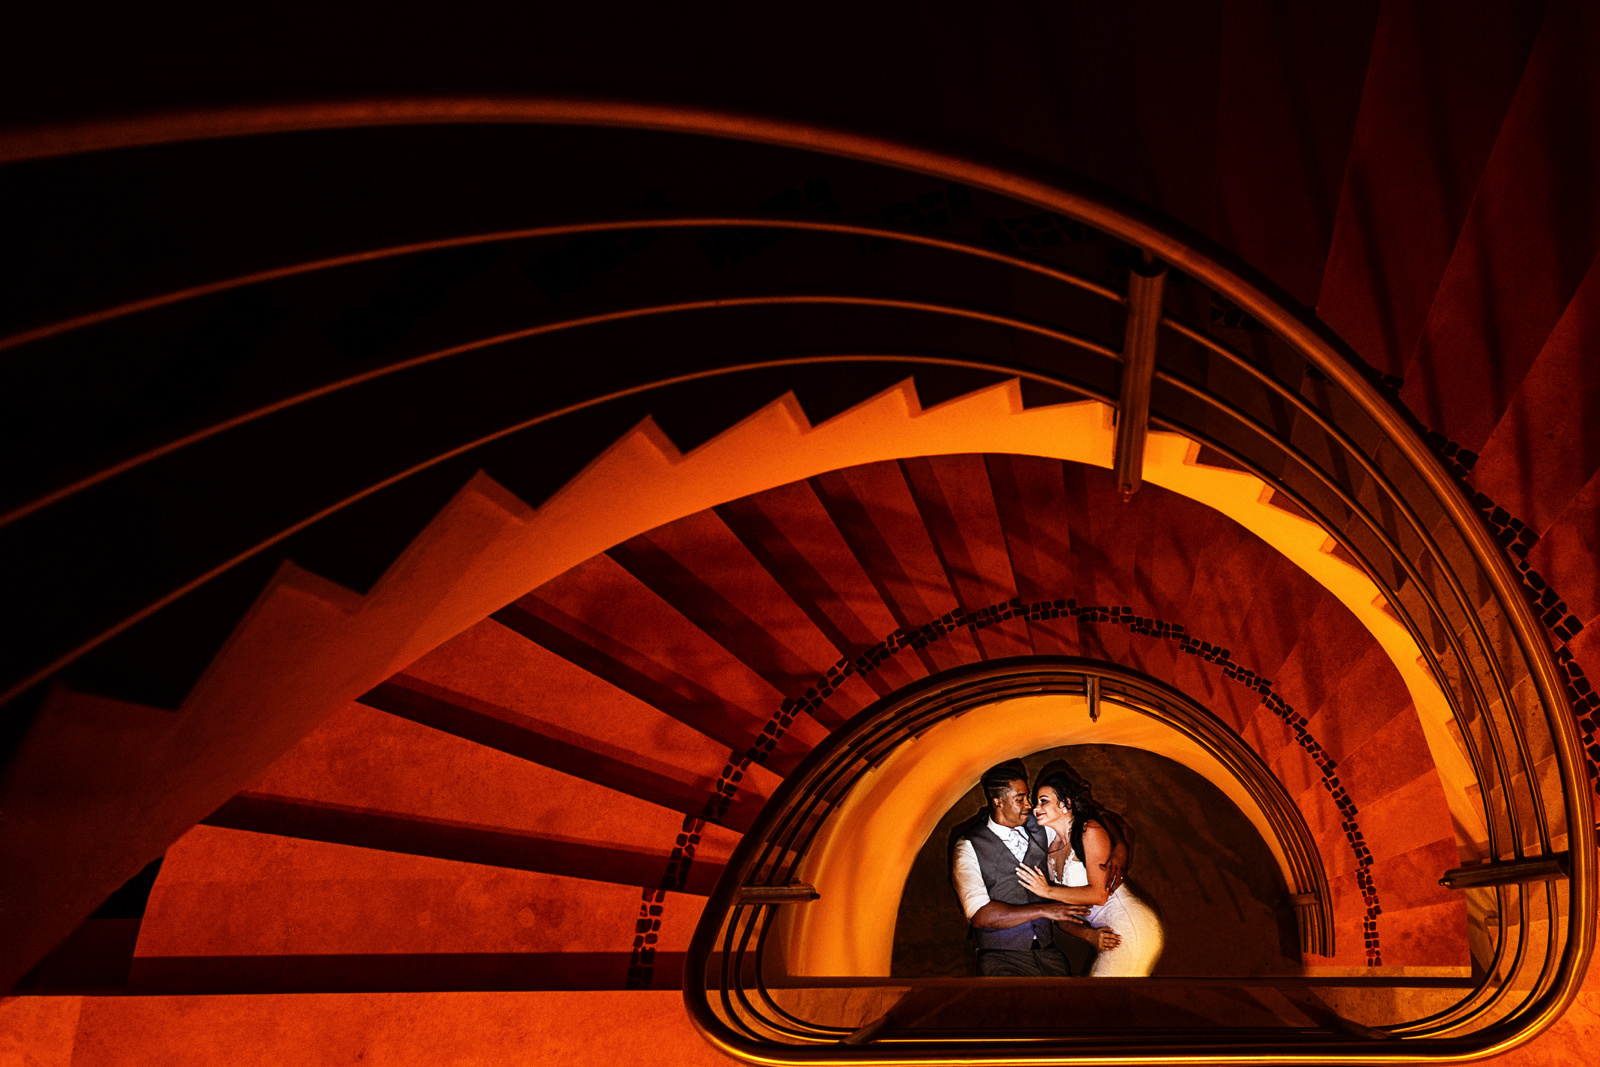 Bride and groom laying down at the bottom of a spiral staircase.